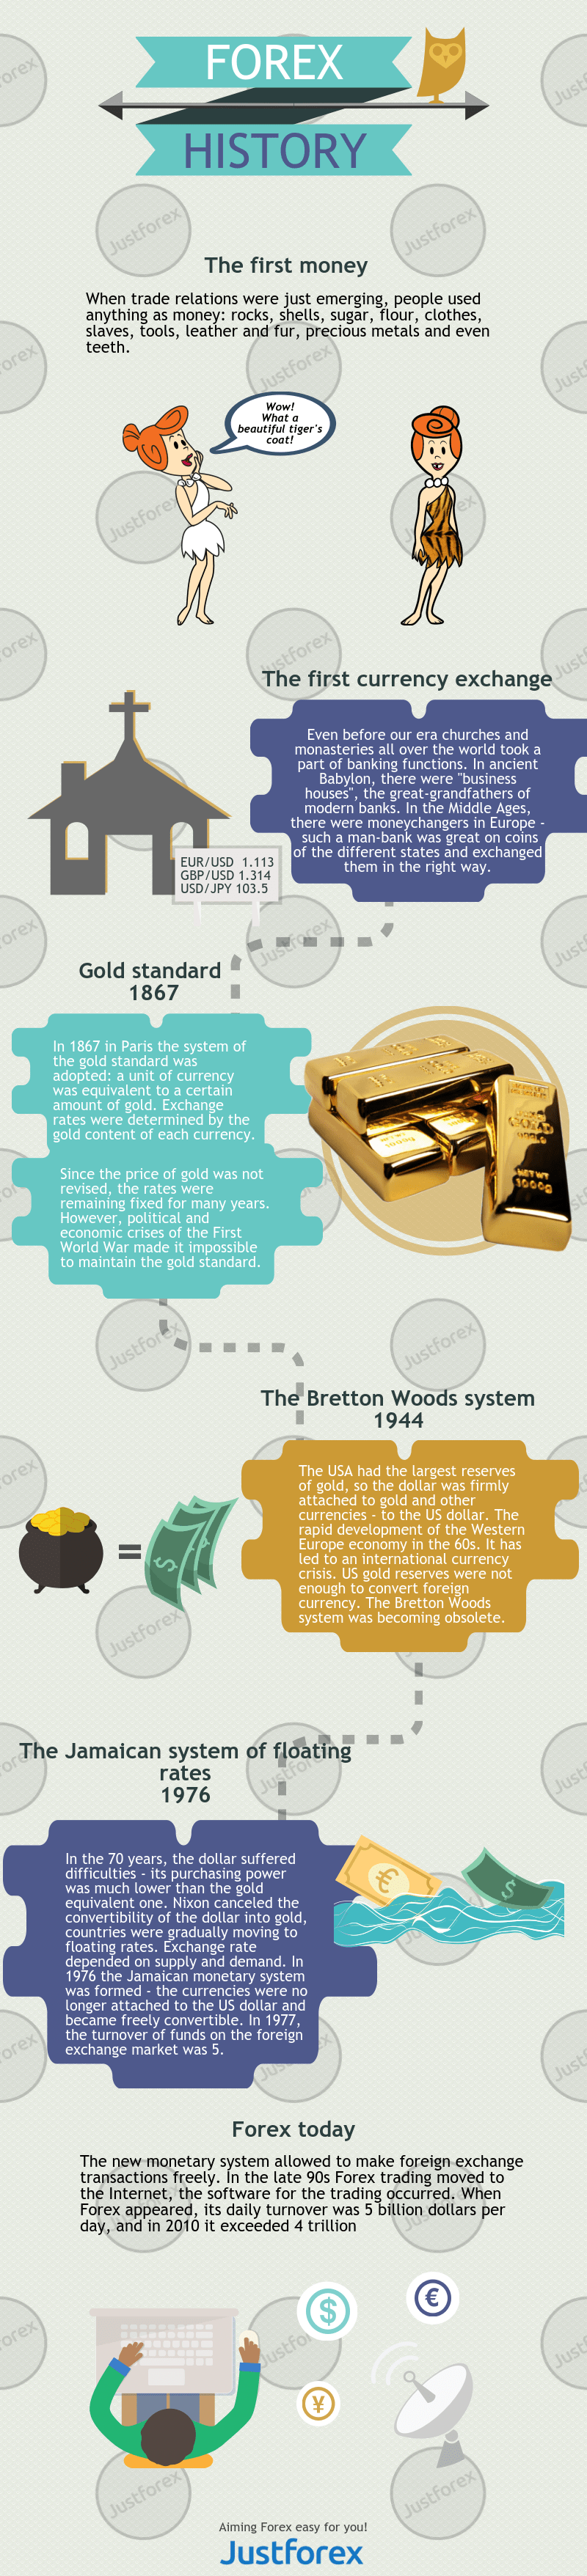 History of the Forex Market